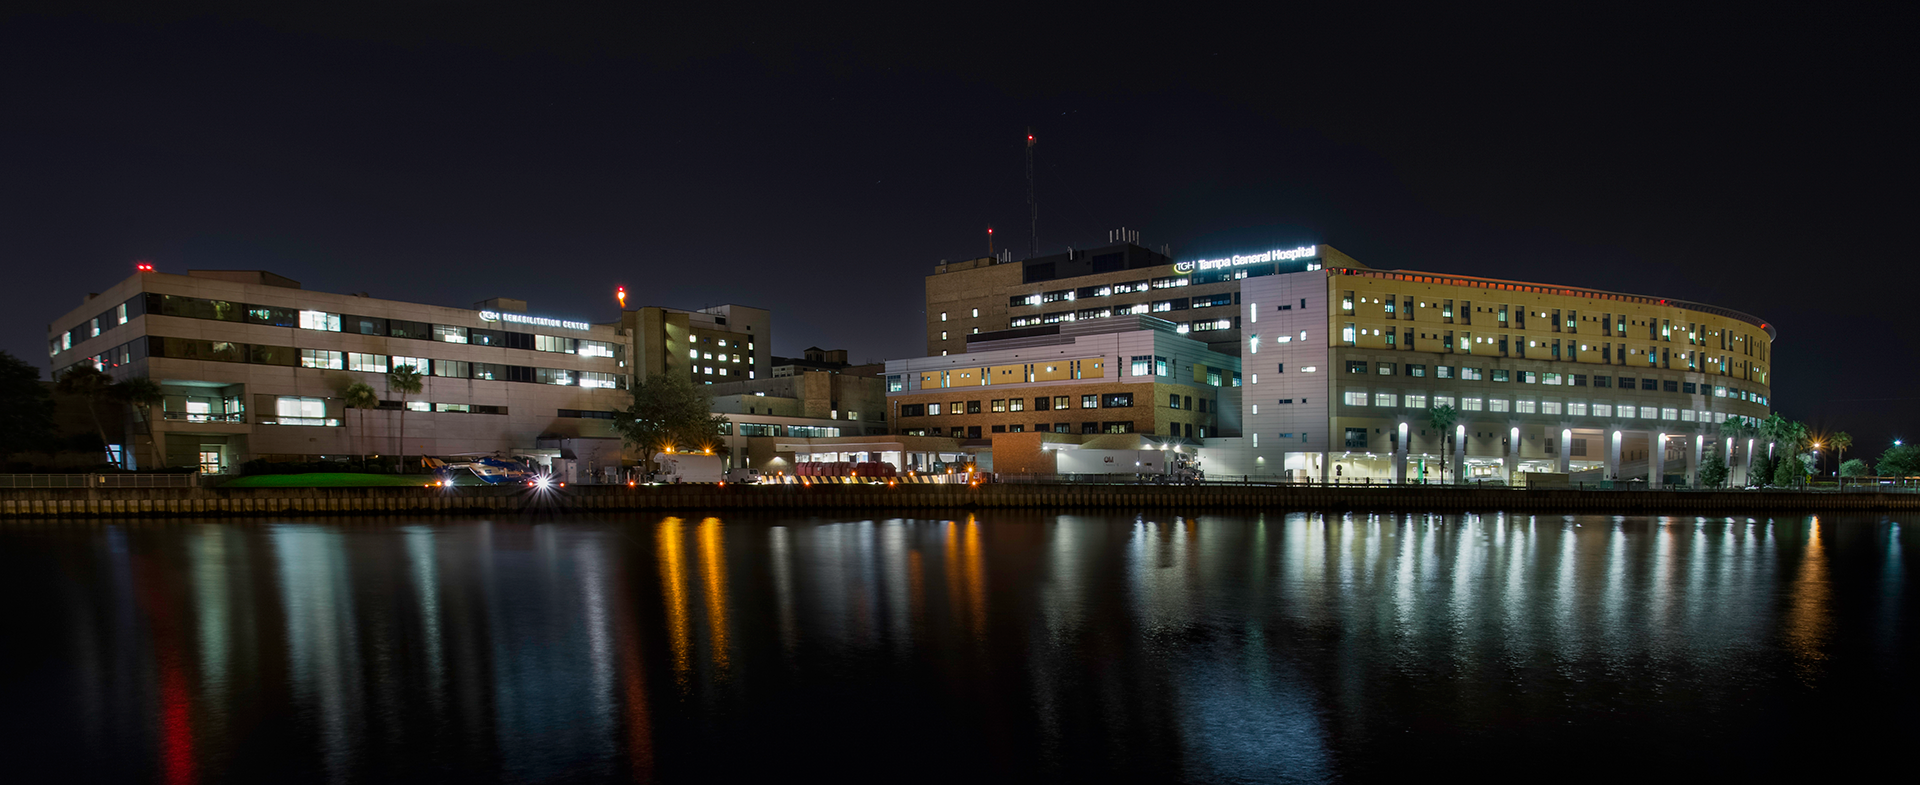 Tampa General Hospital night time over the bay